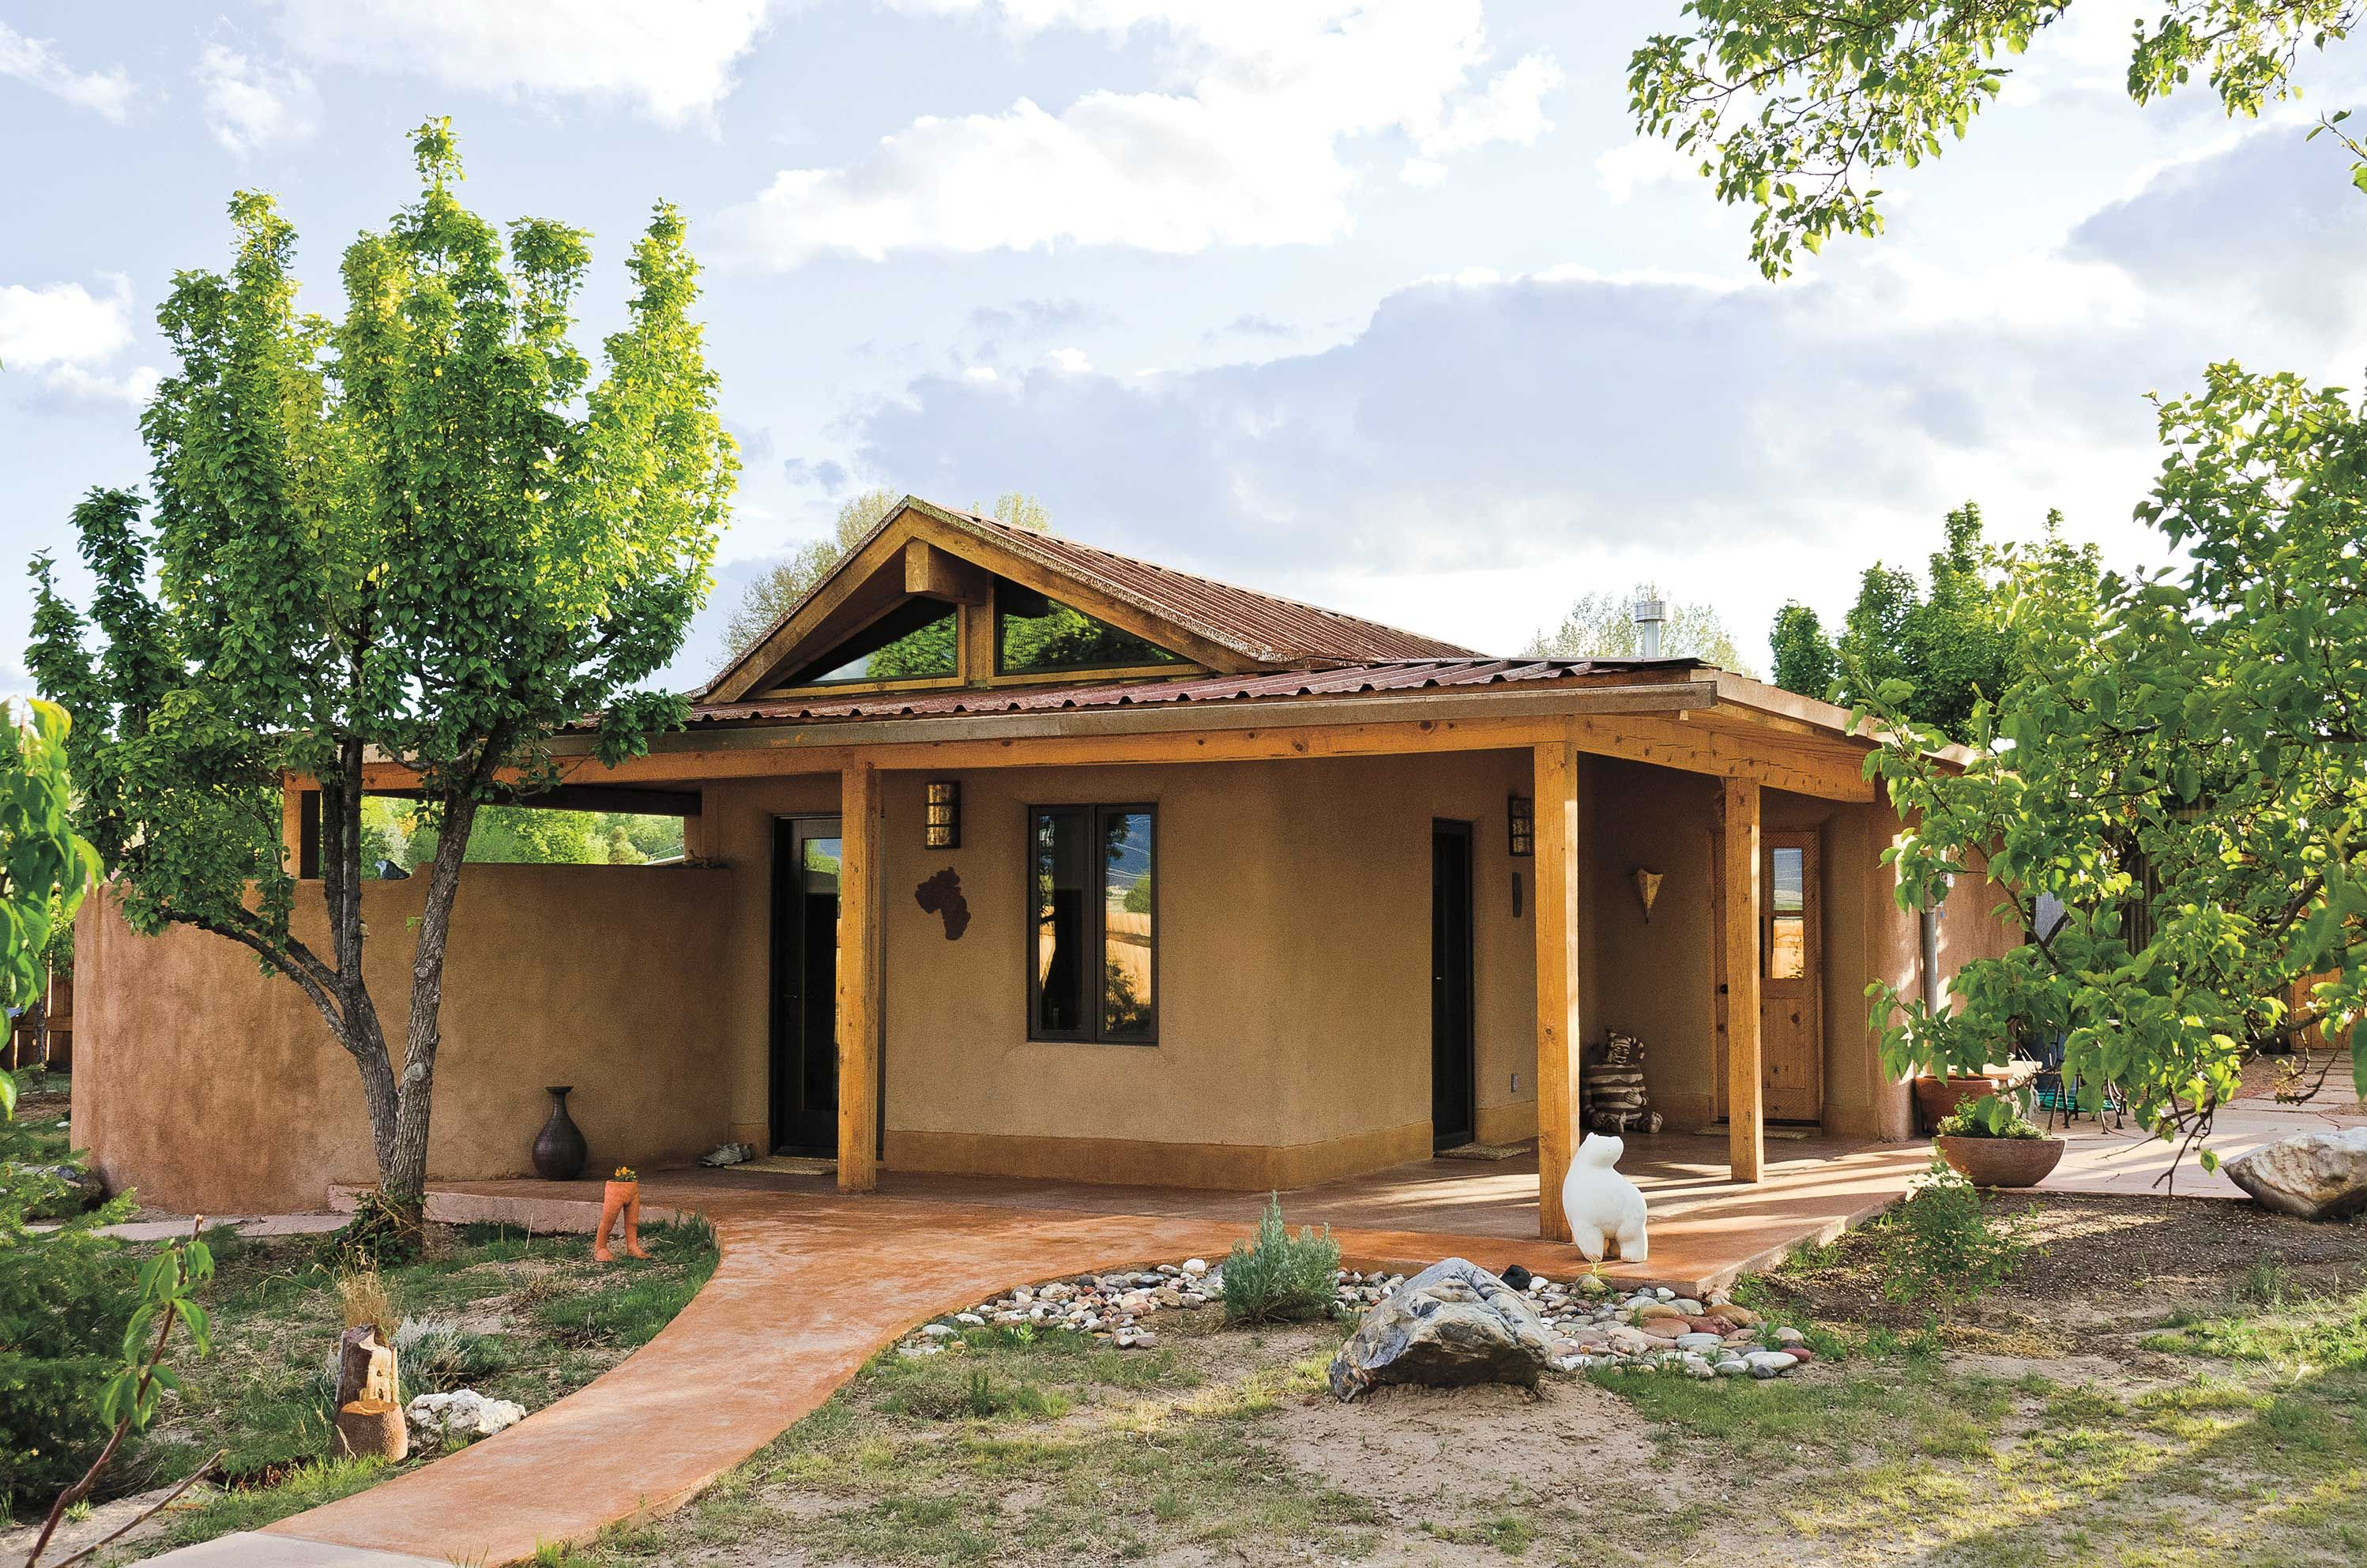 Adobe Home Design Building Earthen Homes Using The Original Diy Material